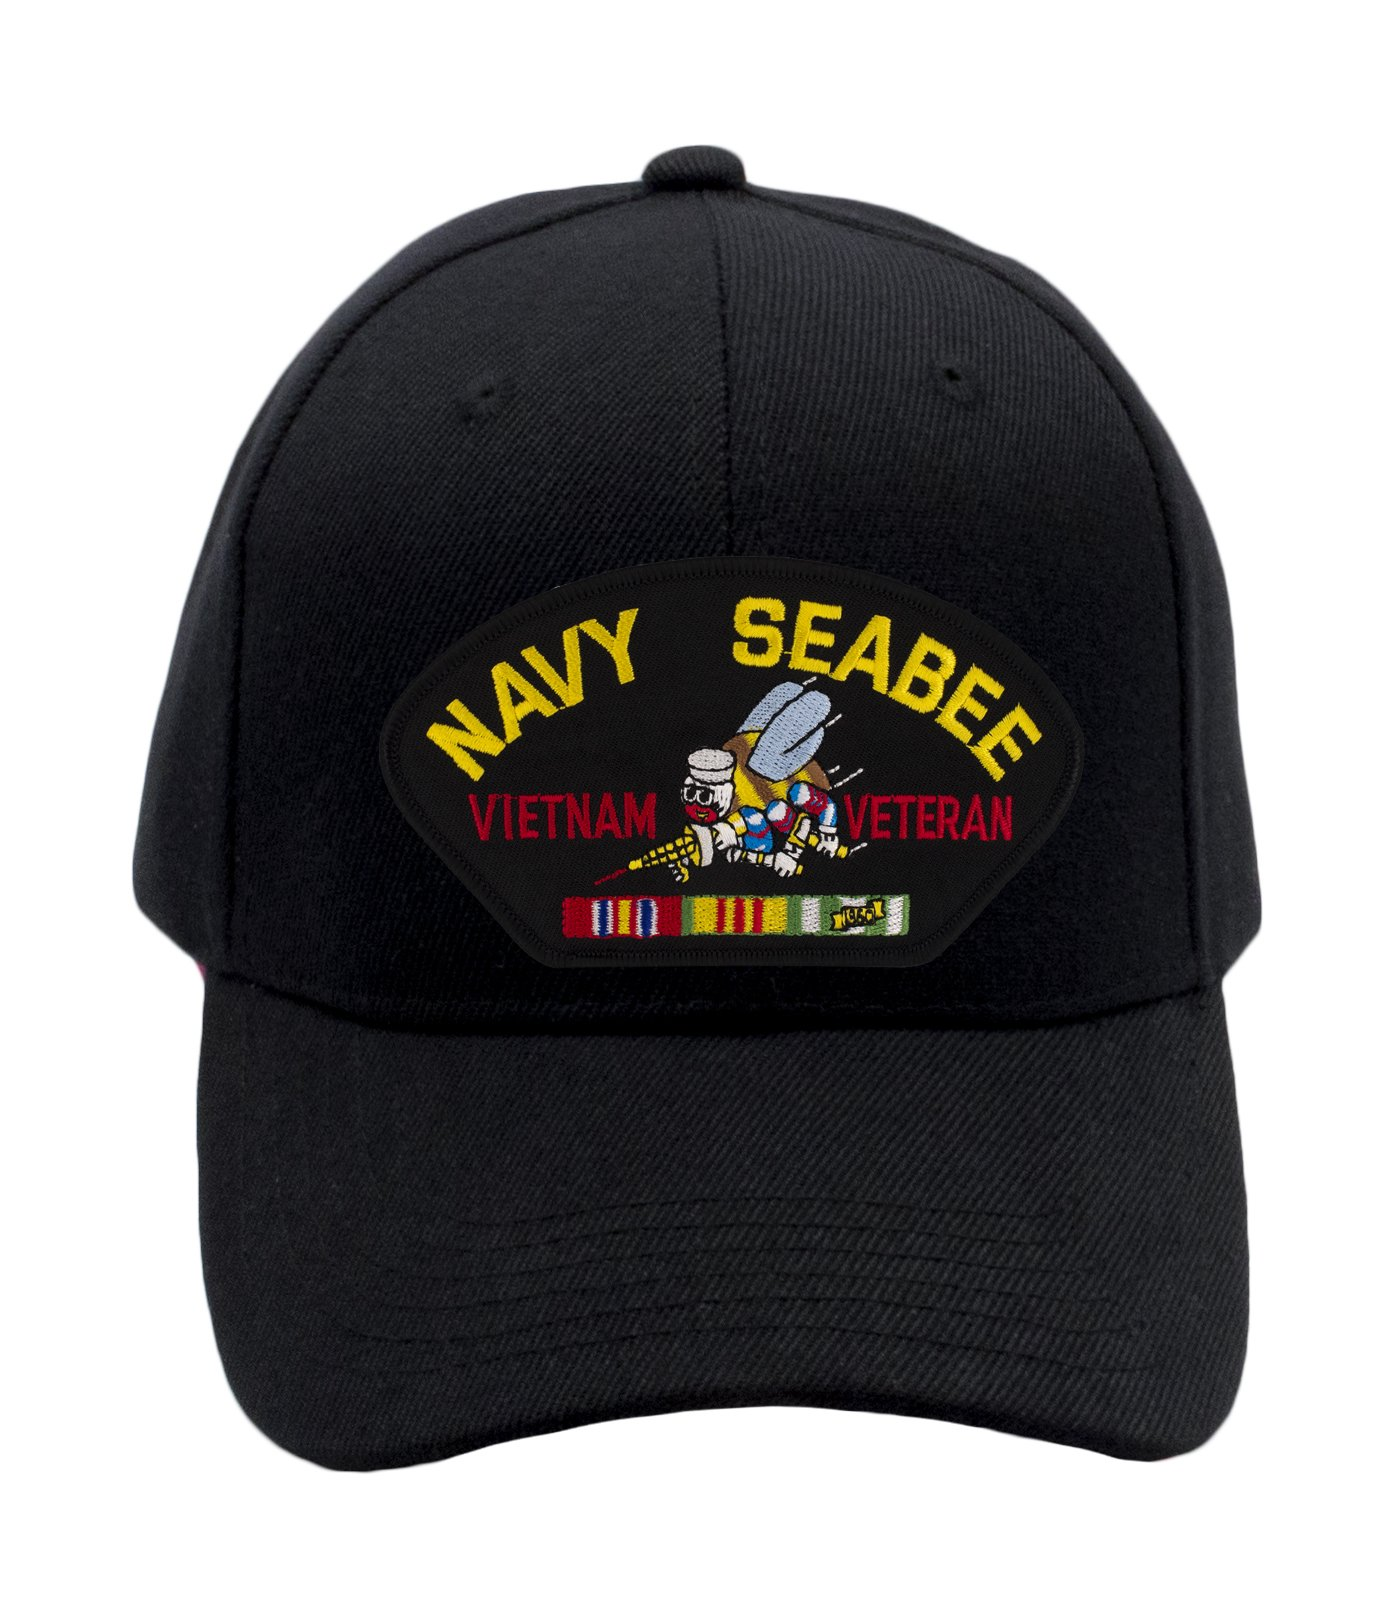 Patchtown US Navy Seabee - Vietnam War Veteran Hat/Ballcap (Black) Adjustable One Size Fits Most